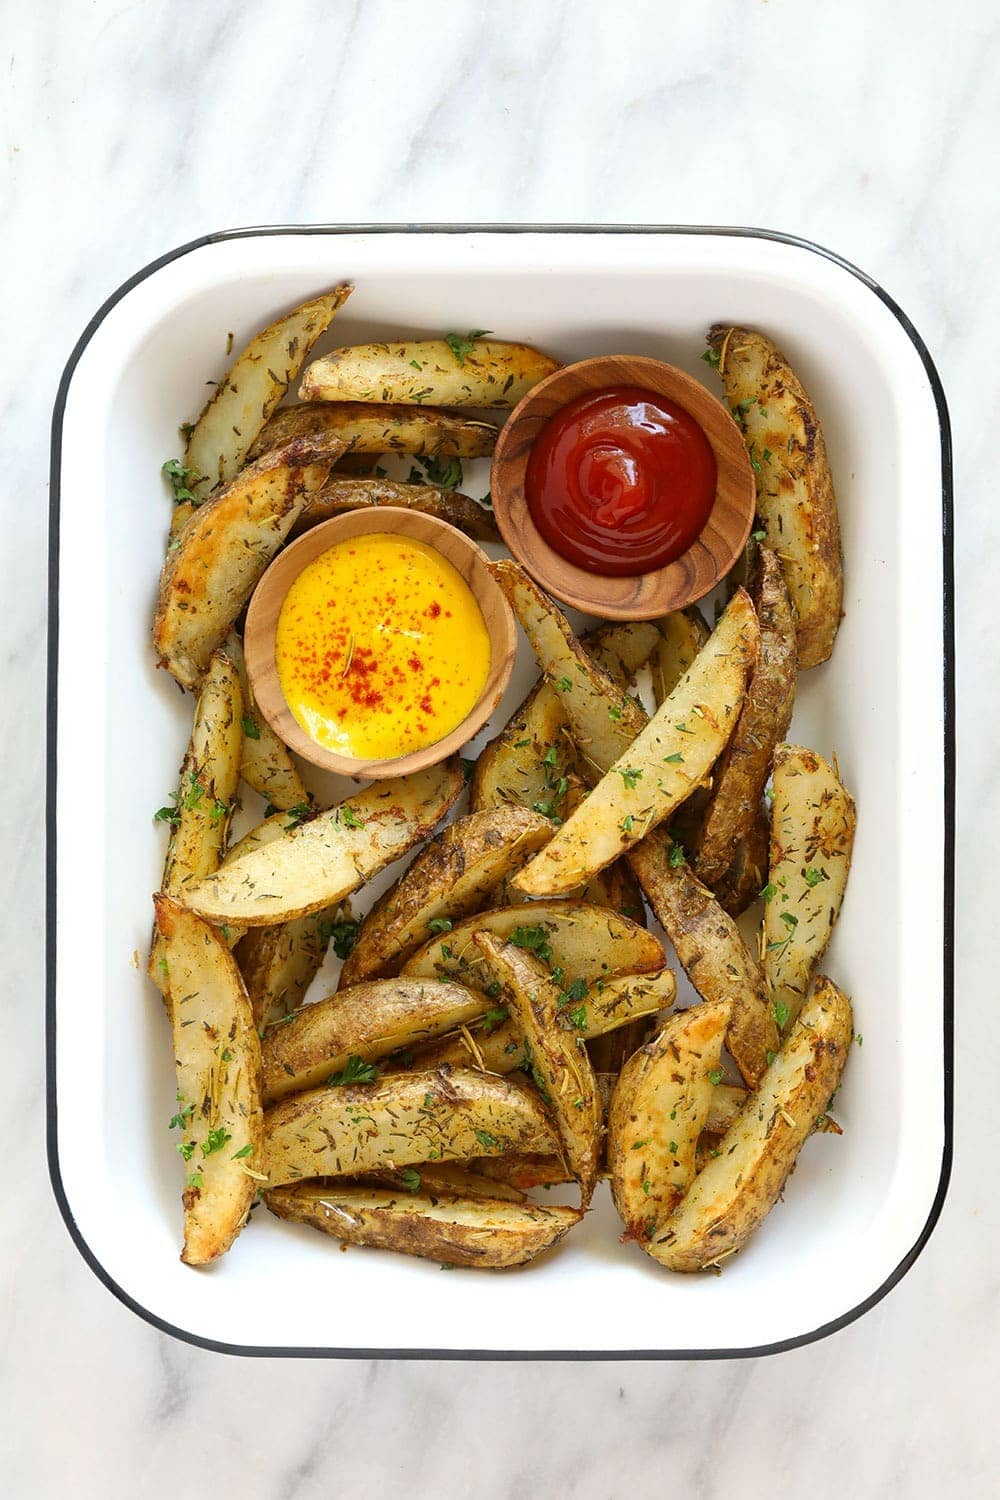 Potato wedges in a platter with ketchup and mustard.